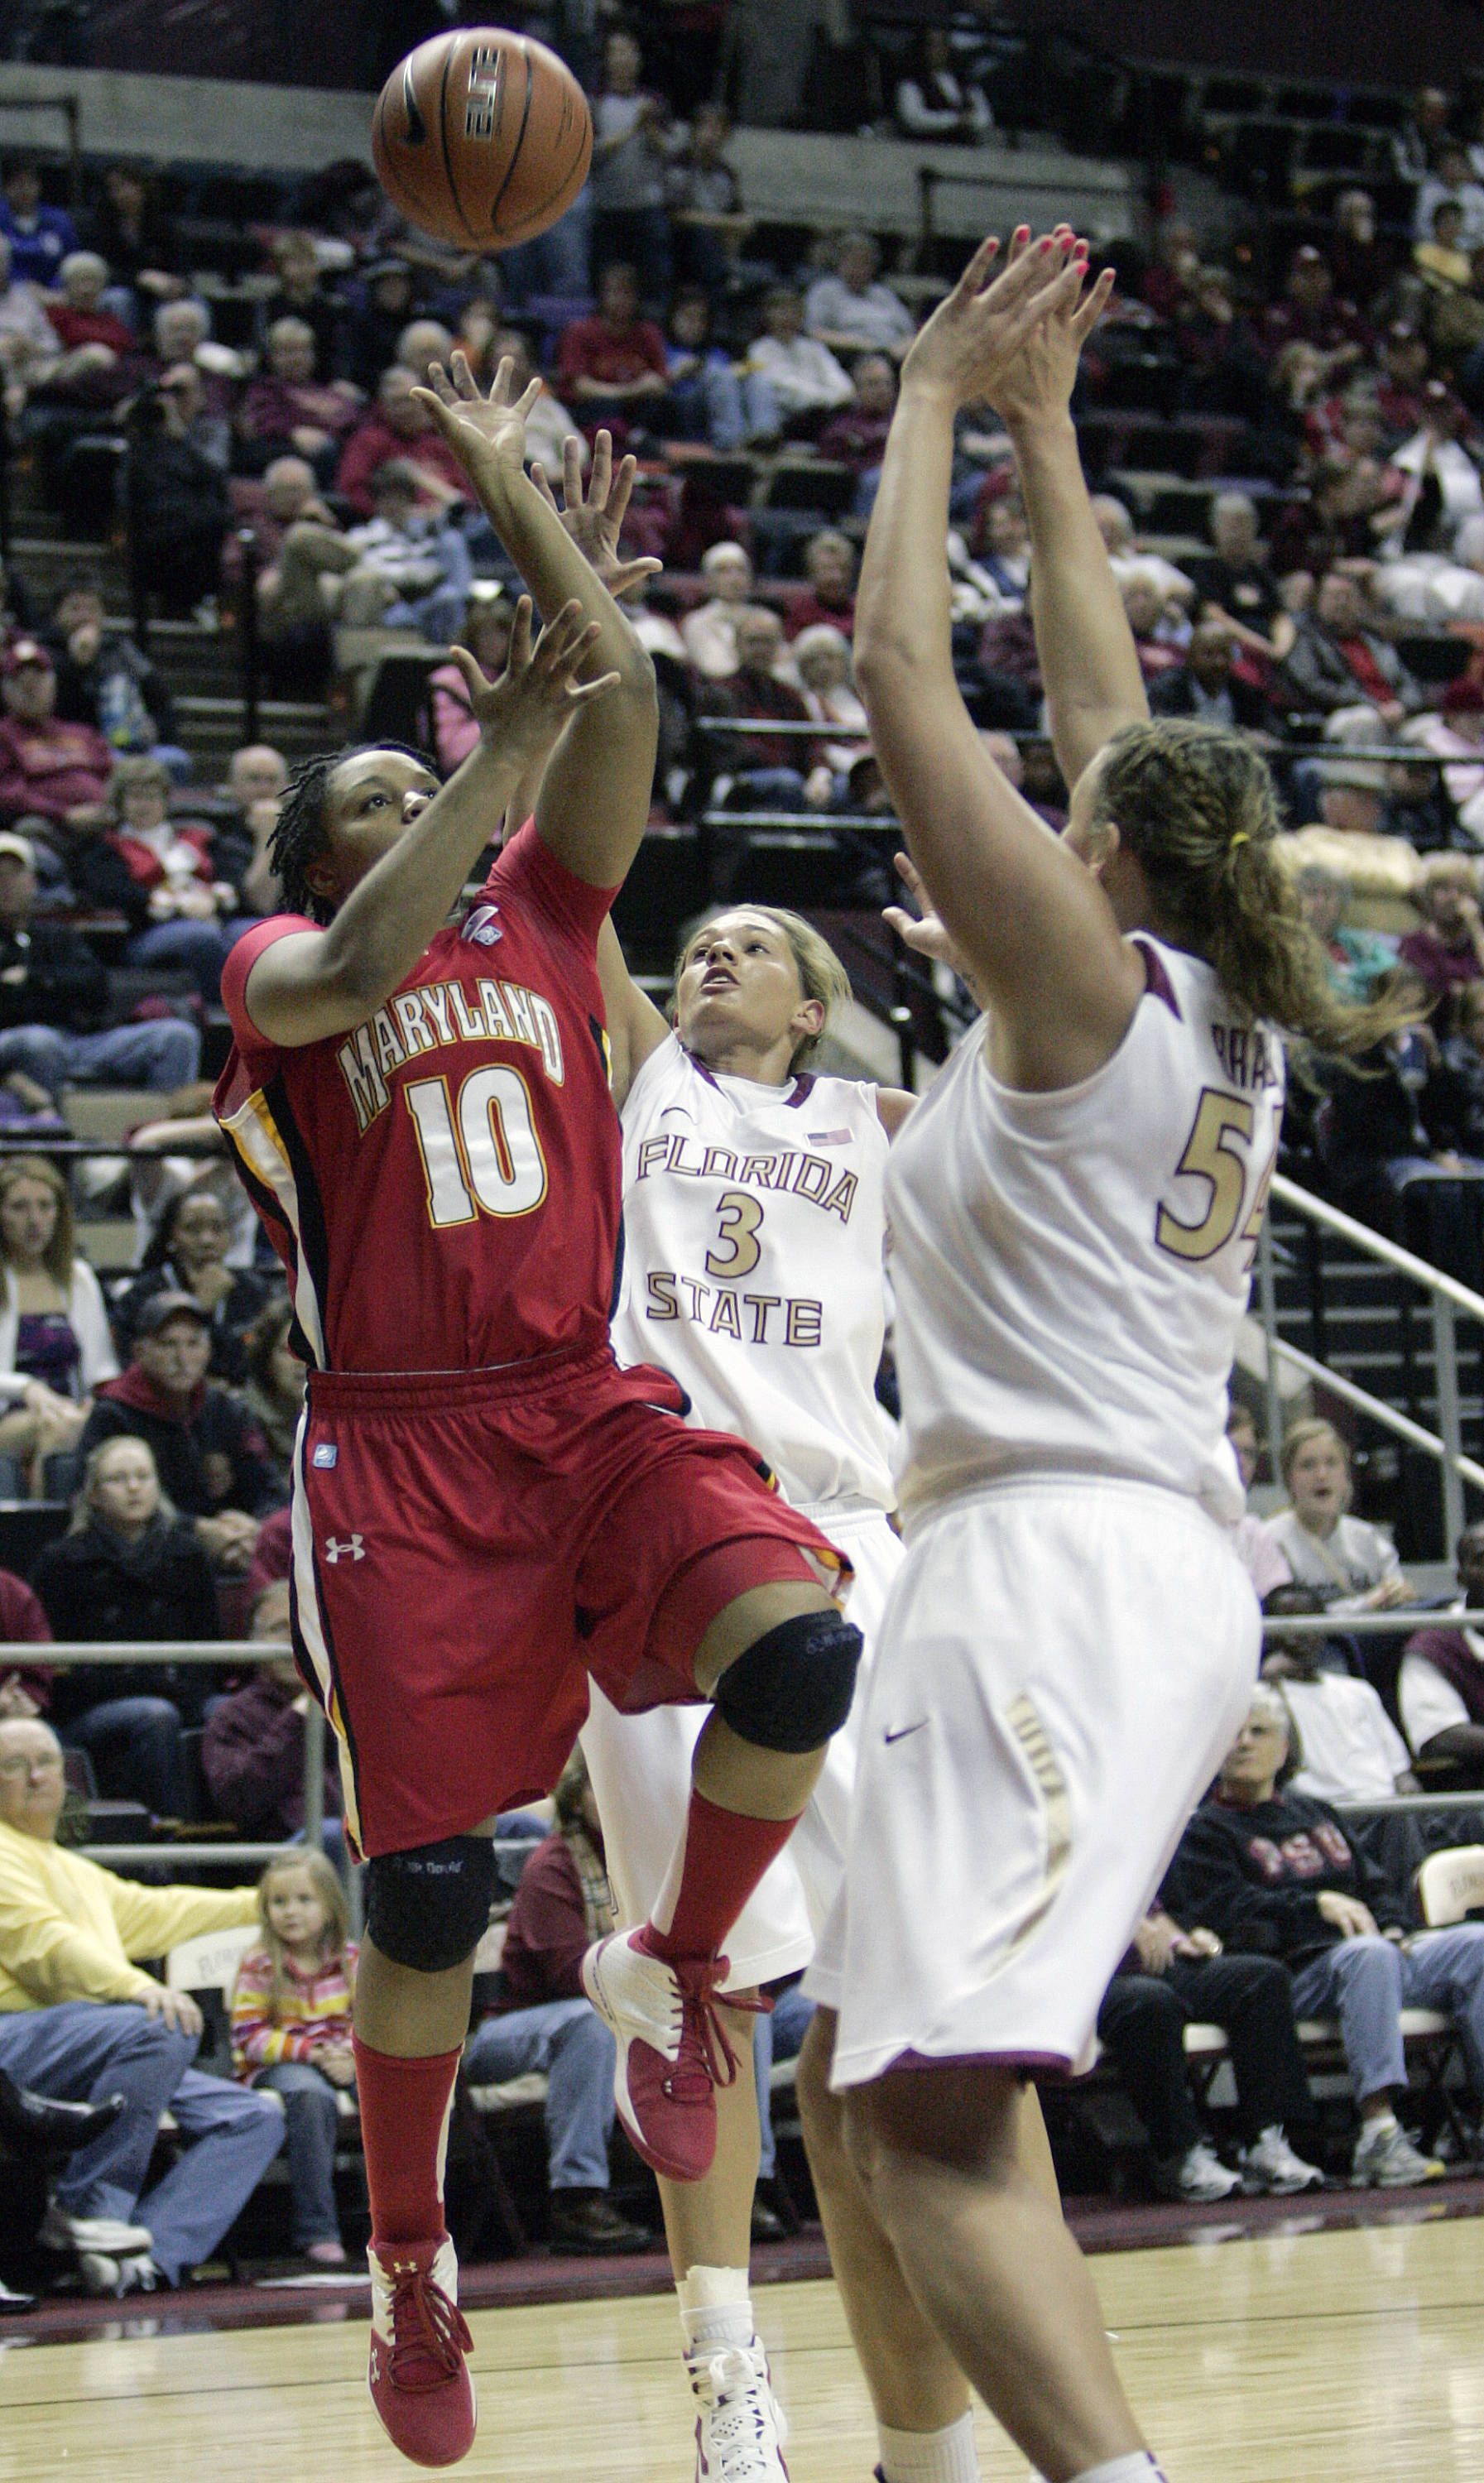 Maryland's Anjale Barrett gets a shot past the defense of Florida State's Alexa Deluzio, center and Cierra Bravard in the first half of an NCAA  college basketball game on Monday, Jan. 2, 2012 in Tallahassee, Fla.(AP Photo/Steve Cannon)